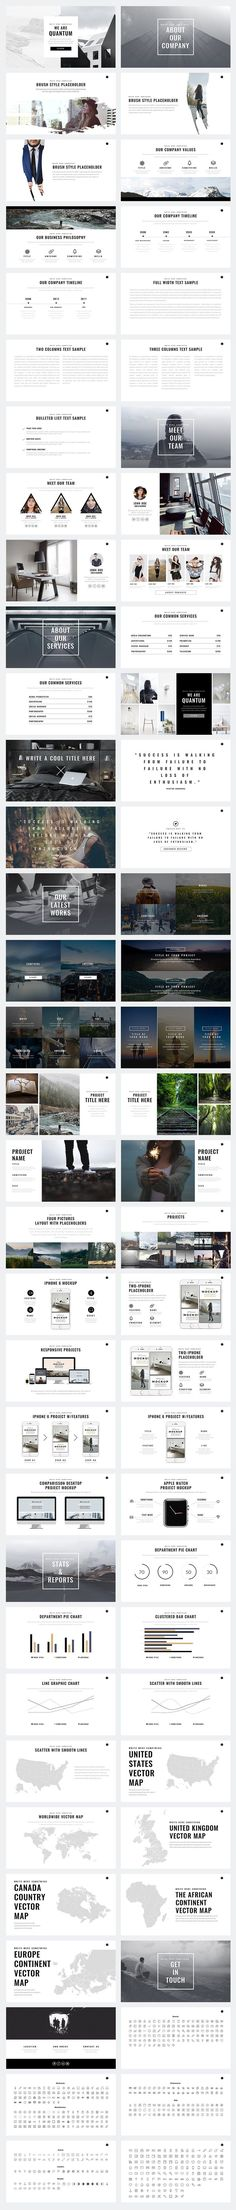 57 best presentation design inspiration images on pinterest in 2018